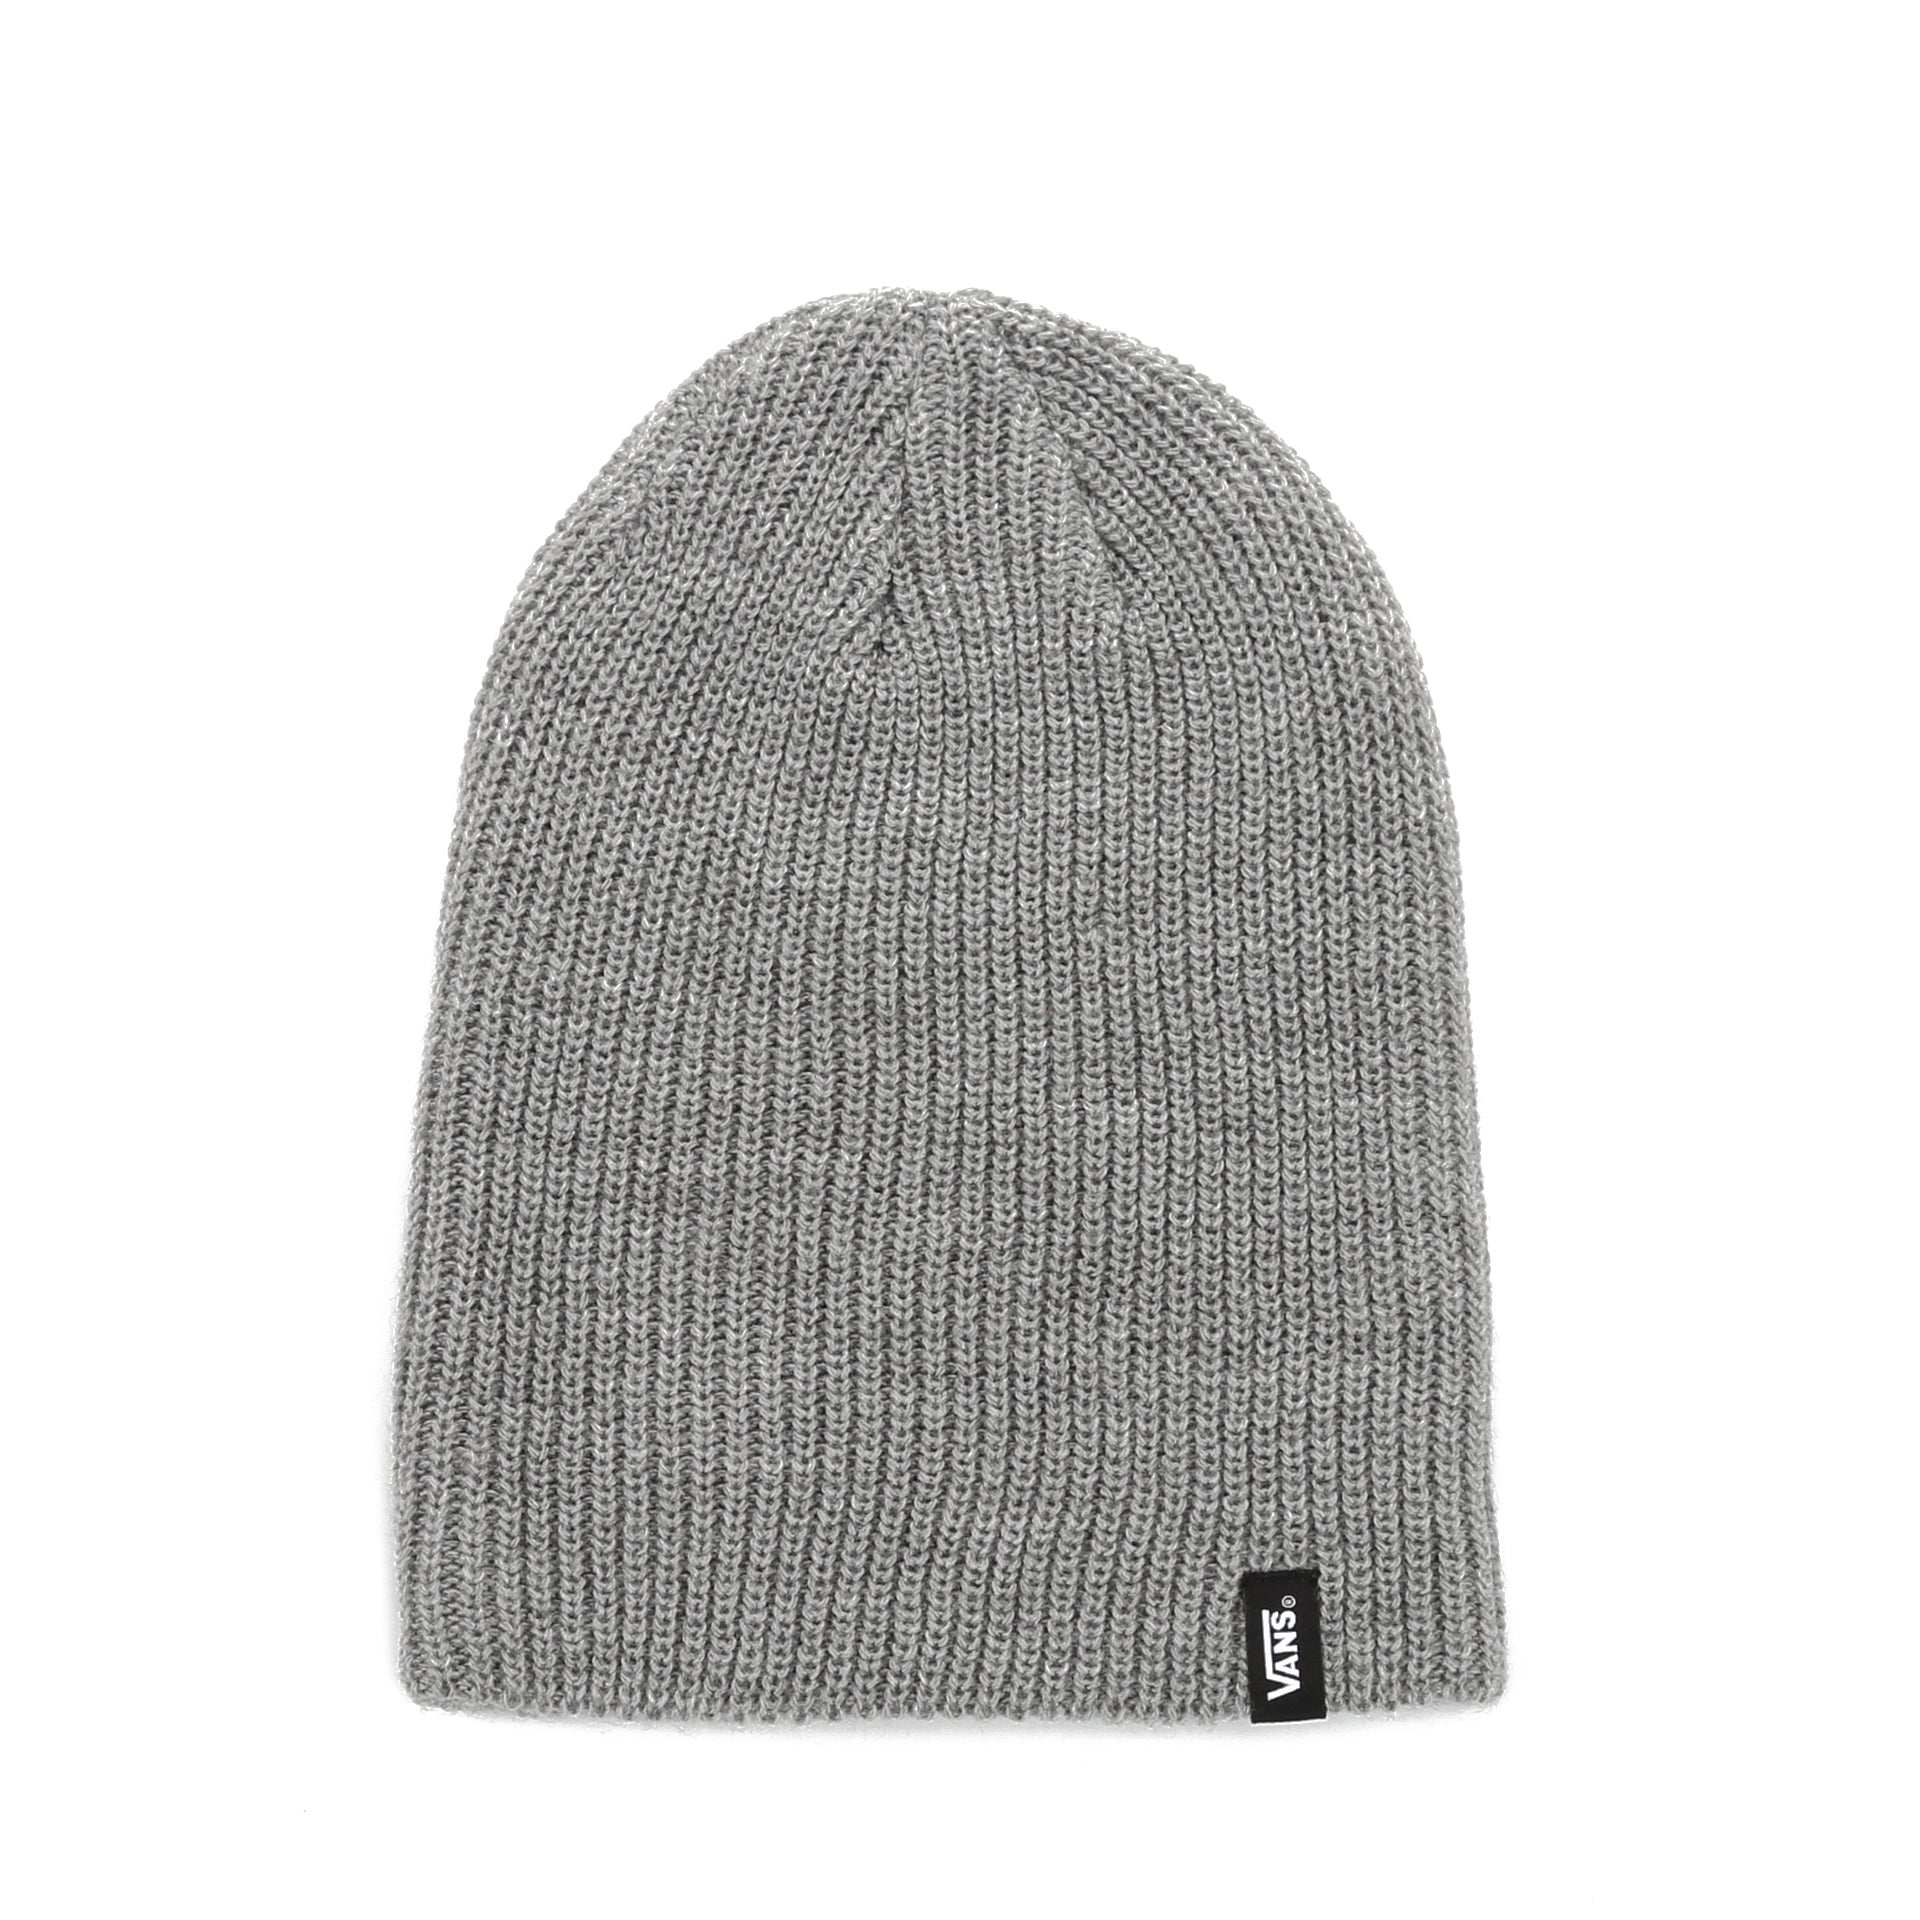 f9dd486f91 Vans Mismoedig Beanie - Heather Grey - New Star